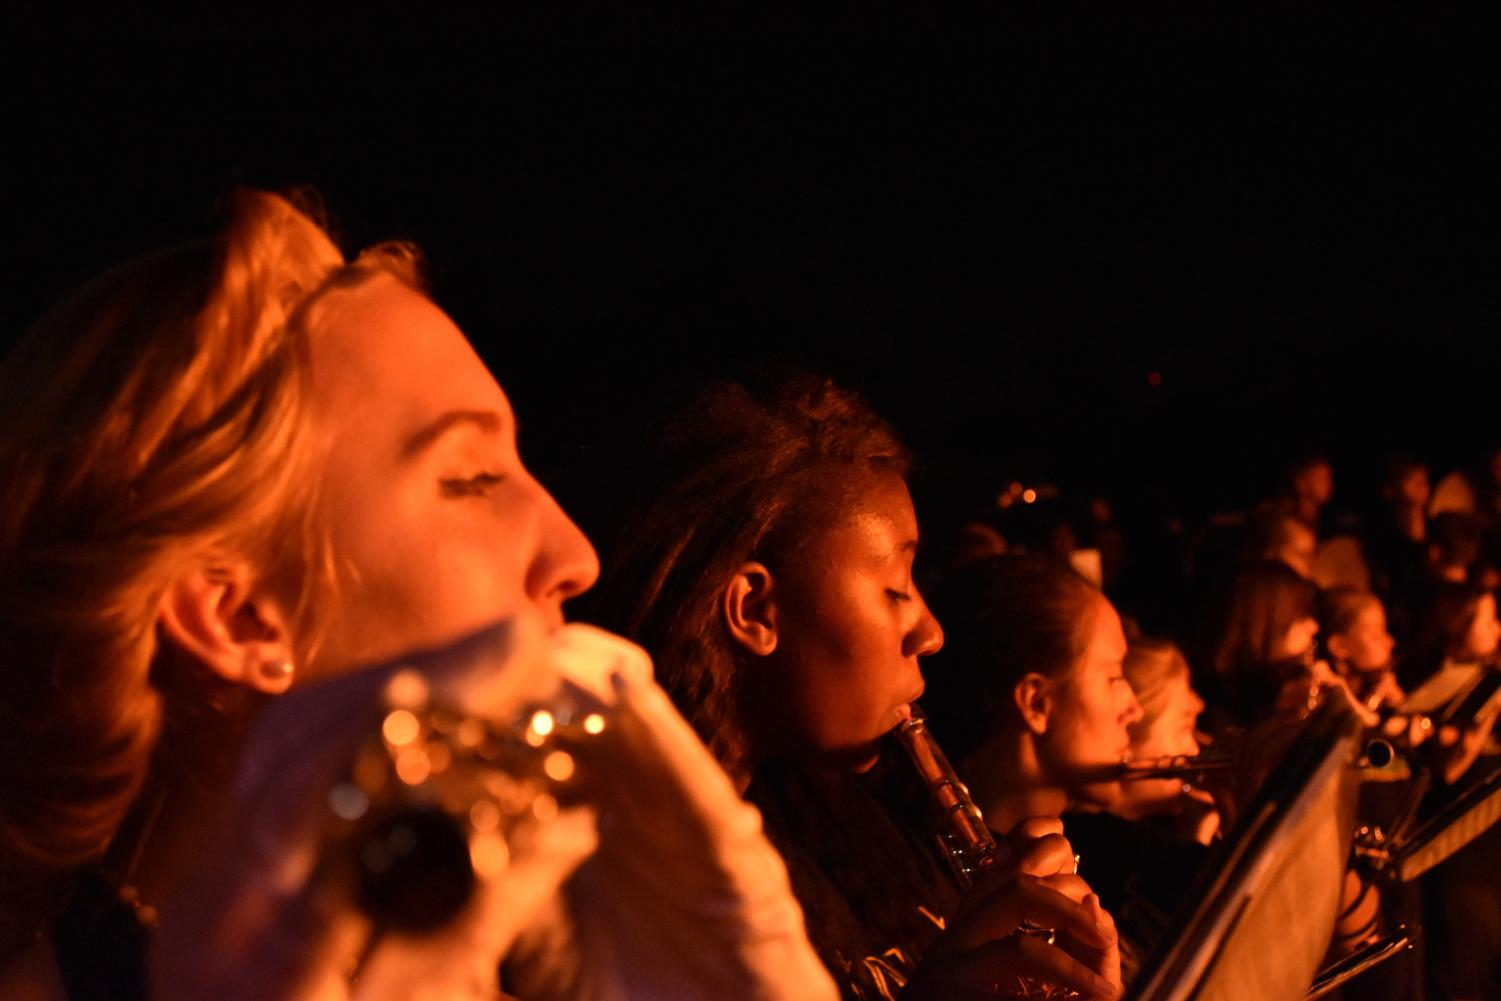 Lauren Greiner (12) and Mavis Causey (11) play flute during the Spirit of STL's performance.